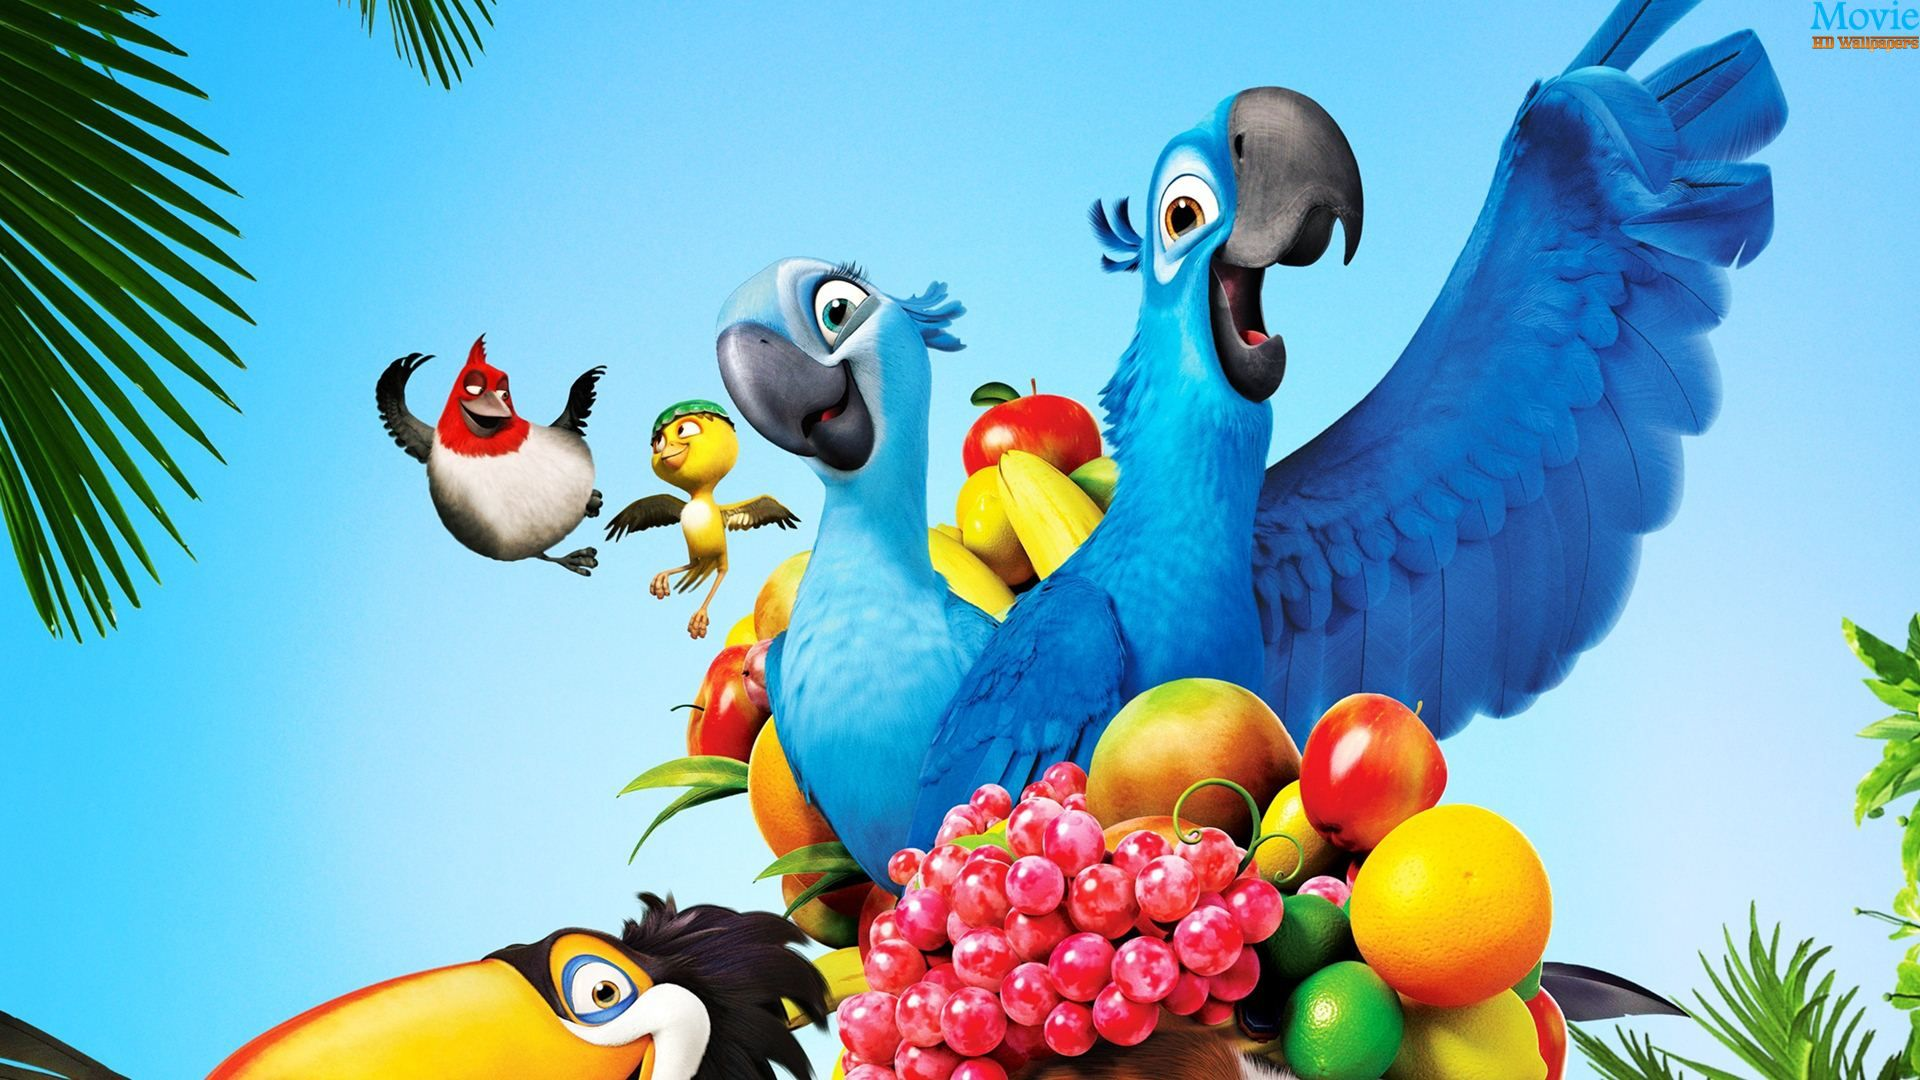 Rio 2 Movie Hd Wallpapers